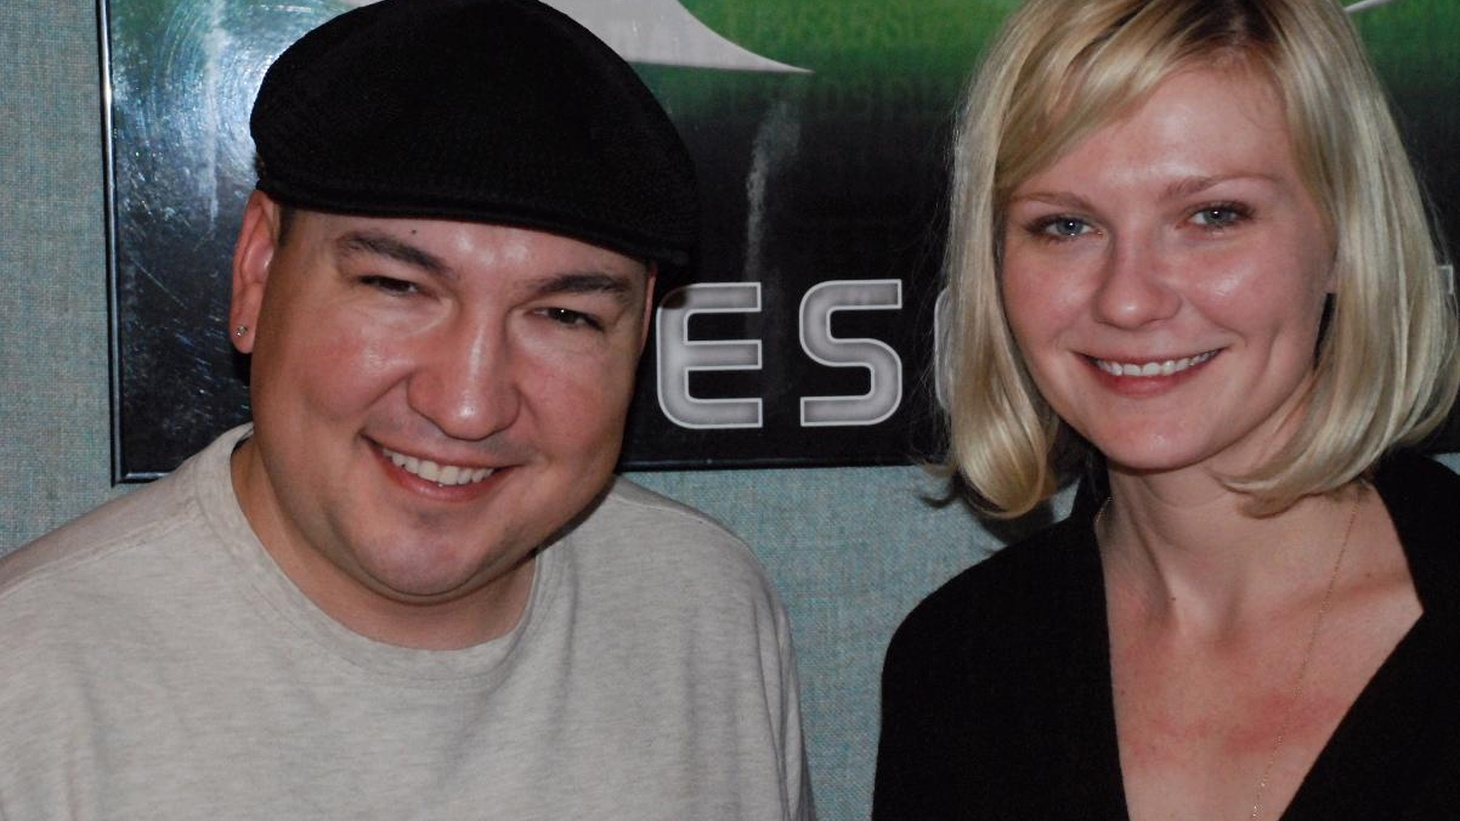 """Leading lady Kirsten Dunst made her mark as Mary Jane Watson - the object of Spider Man's affection - in the hugely successful trilogy and is currently drawing acclaim for her role in the indie film """"All Good Things."""" She reveals her romantic side in a list of songs about love and loss, from the simple pop of The Zombies to the epic orchestration of Guns n Roses' November Rain."""""""